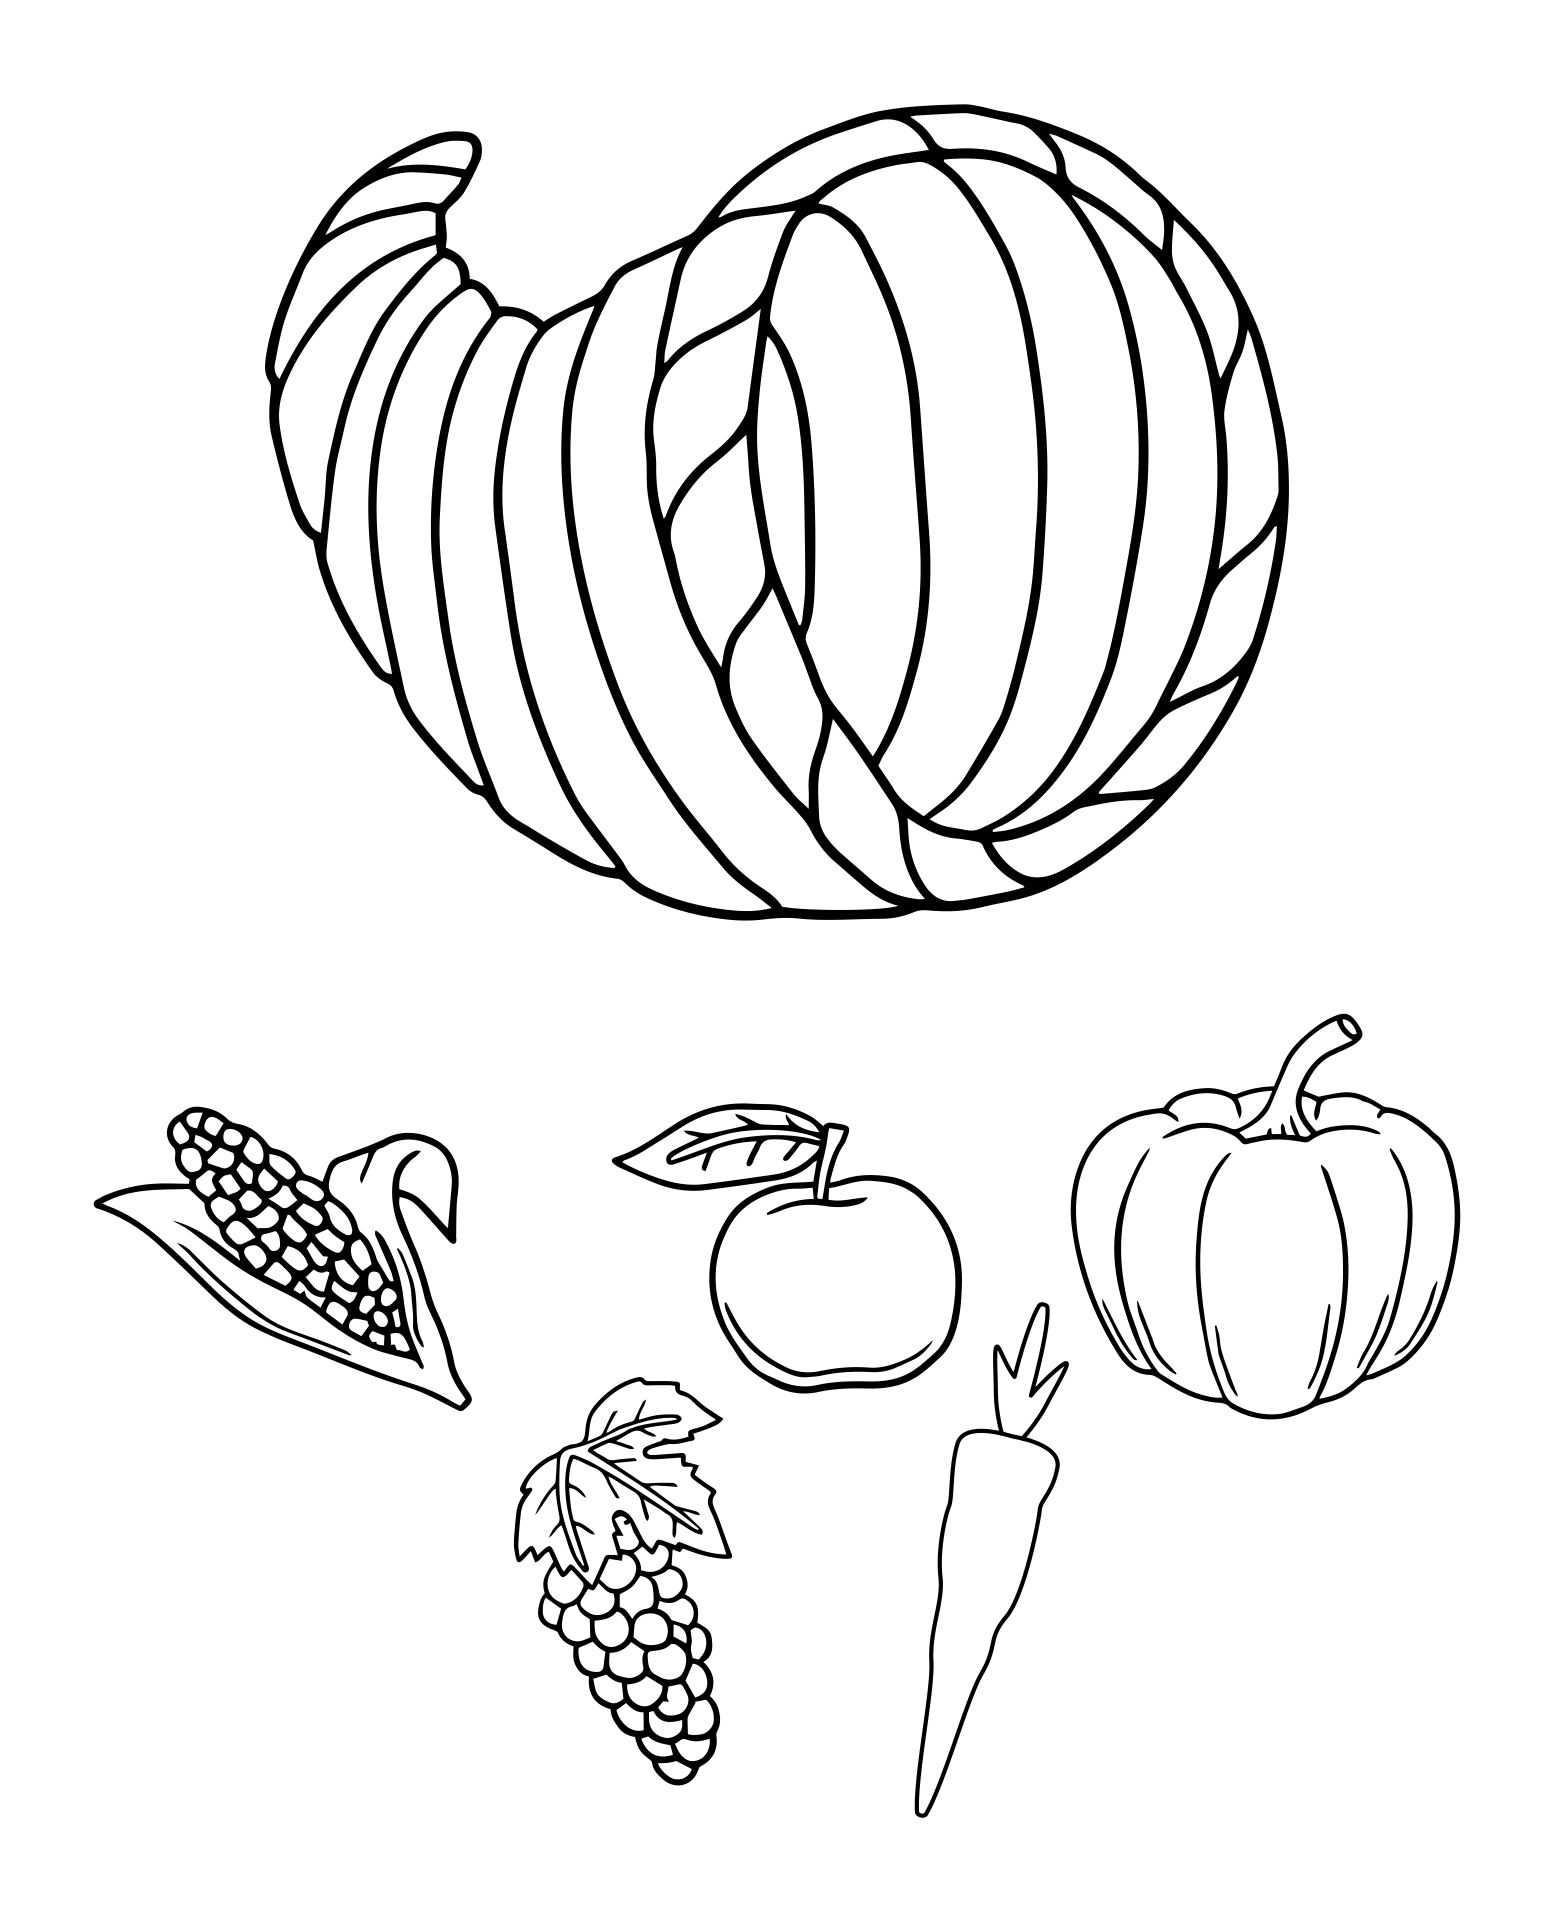 8 Best Images of Cornucopia Fruit And Vegetable Printables ...